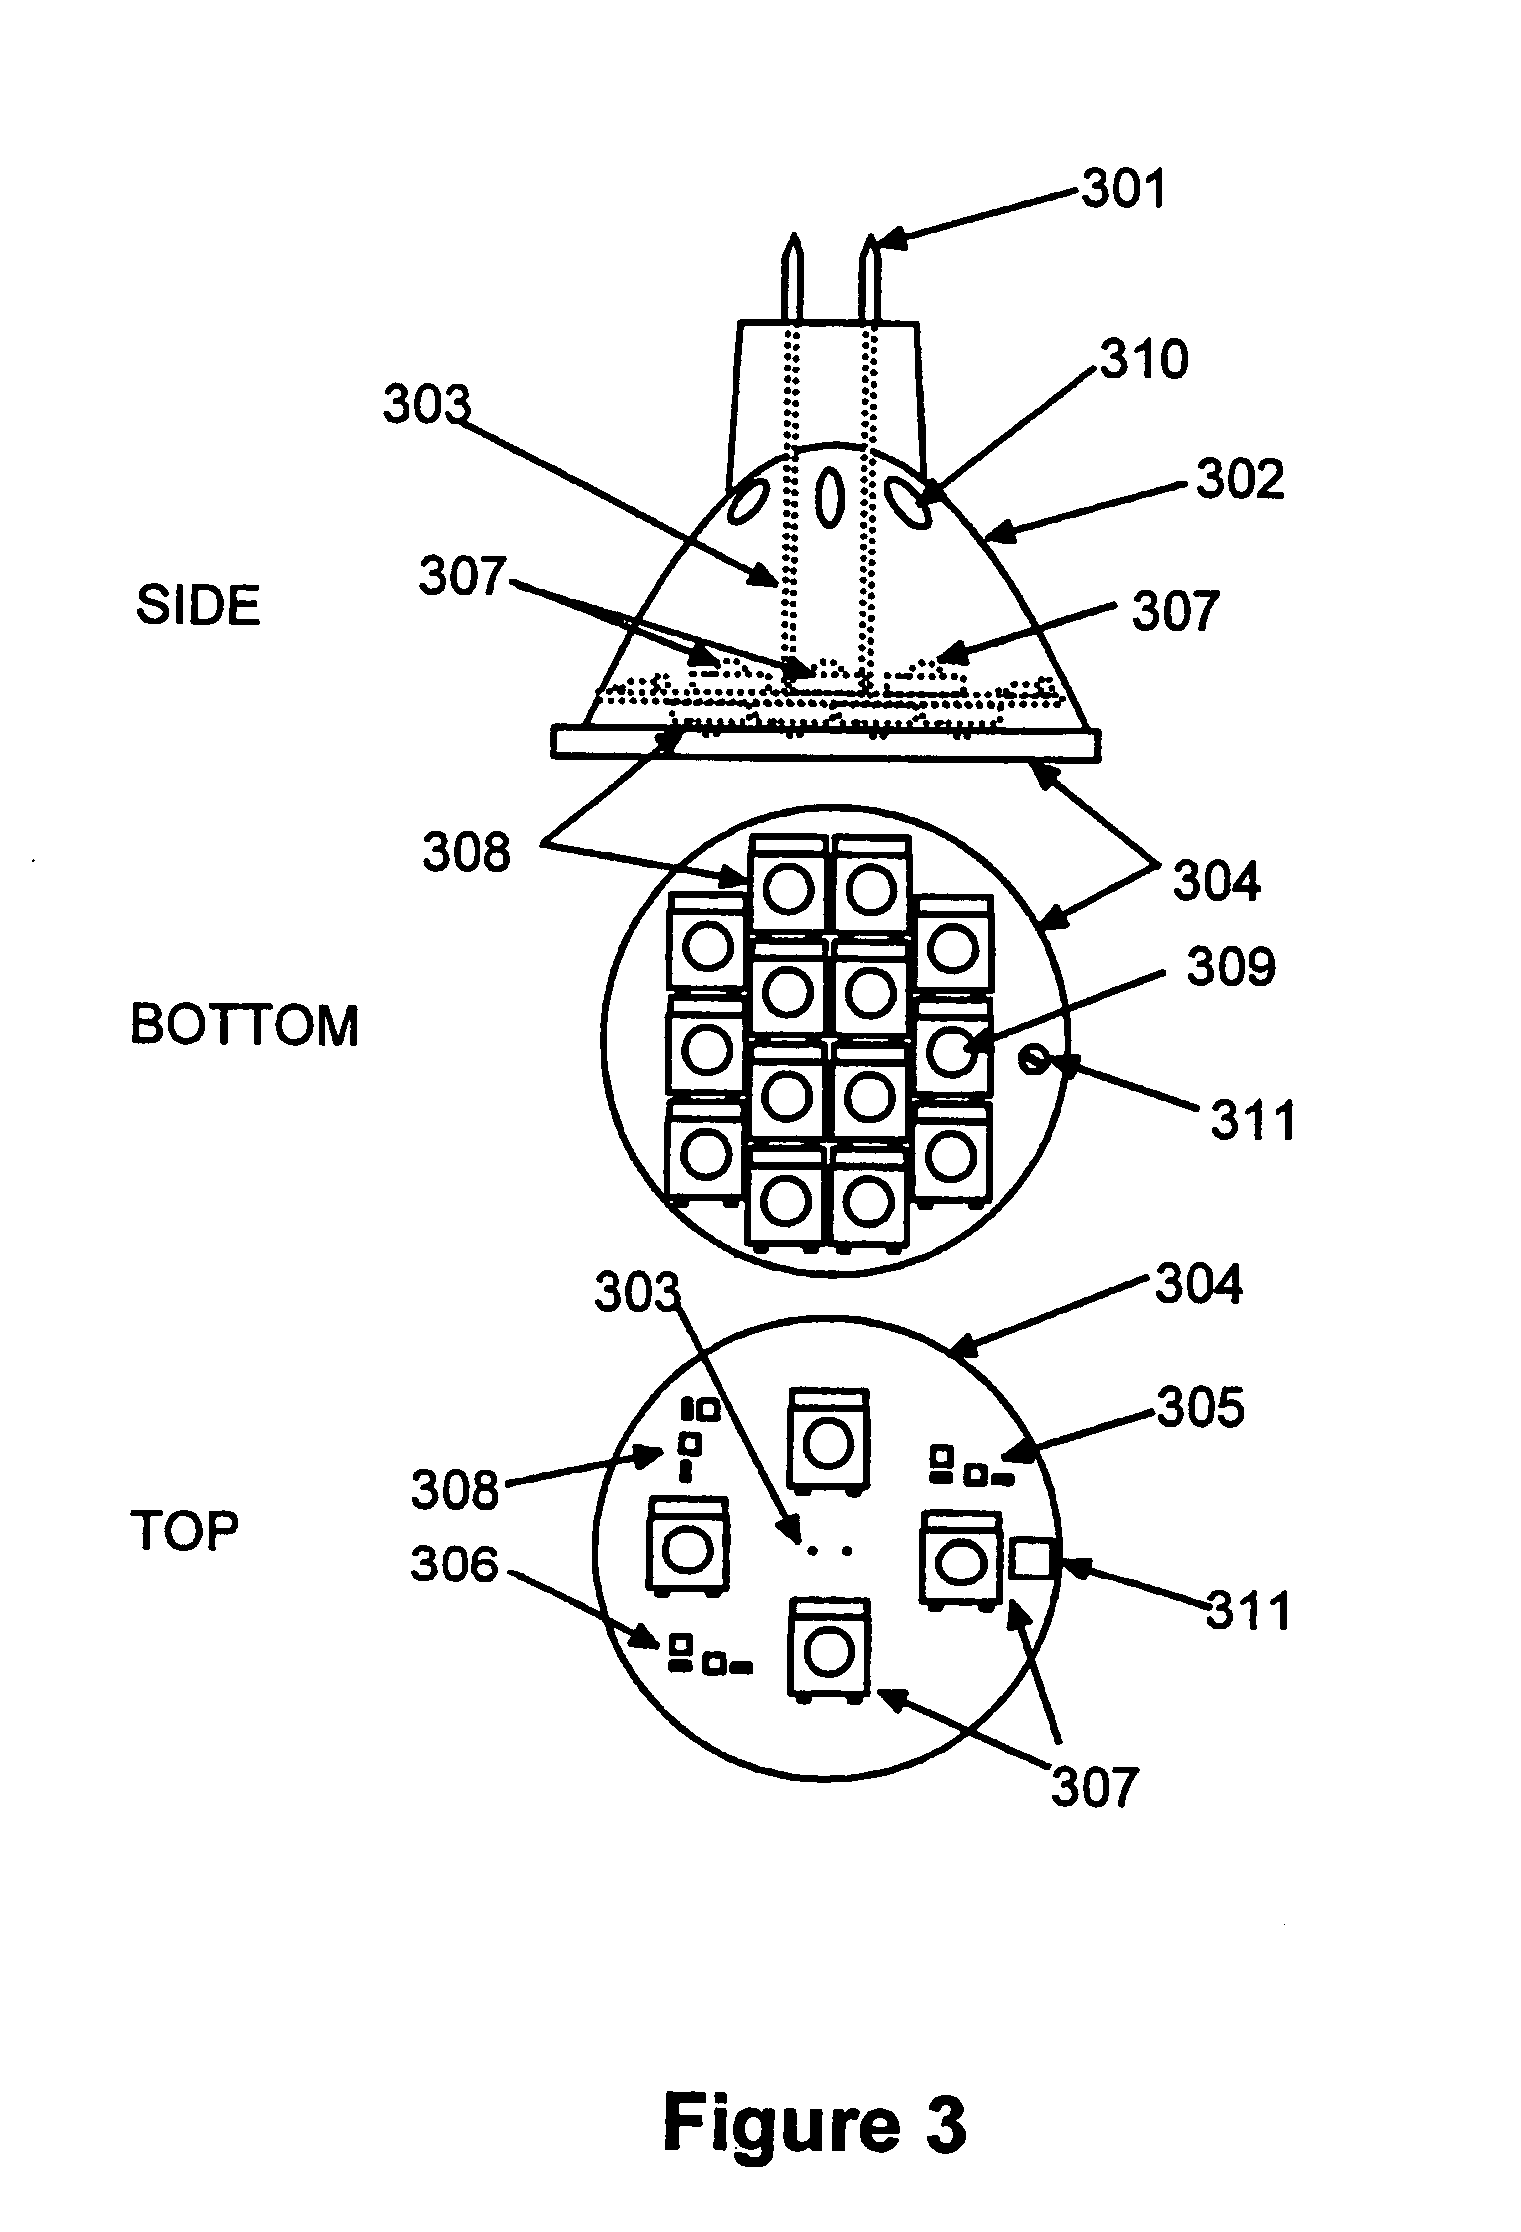 US7357525 additionally Schematic Symbol For Light Emitting Diode moreover Poster photo  180597700 likewise R5 3 1 also US20060012997. on led light emitting diode bulb lamp